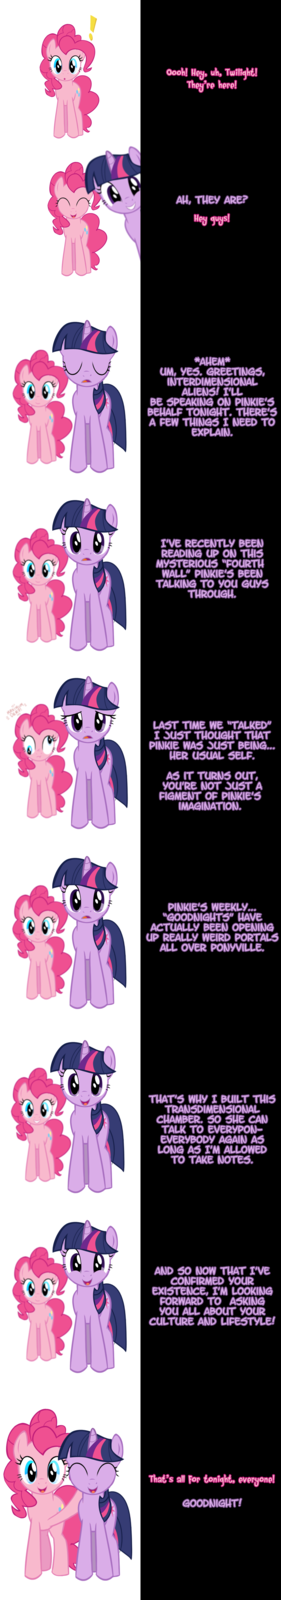 Pinkie and Twilight say Goodnight!